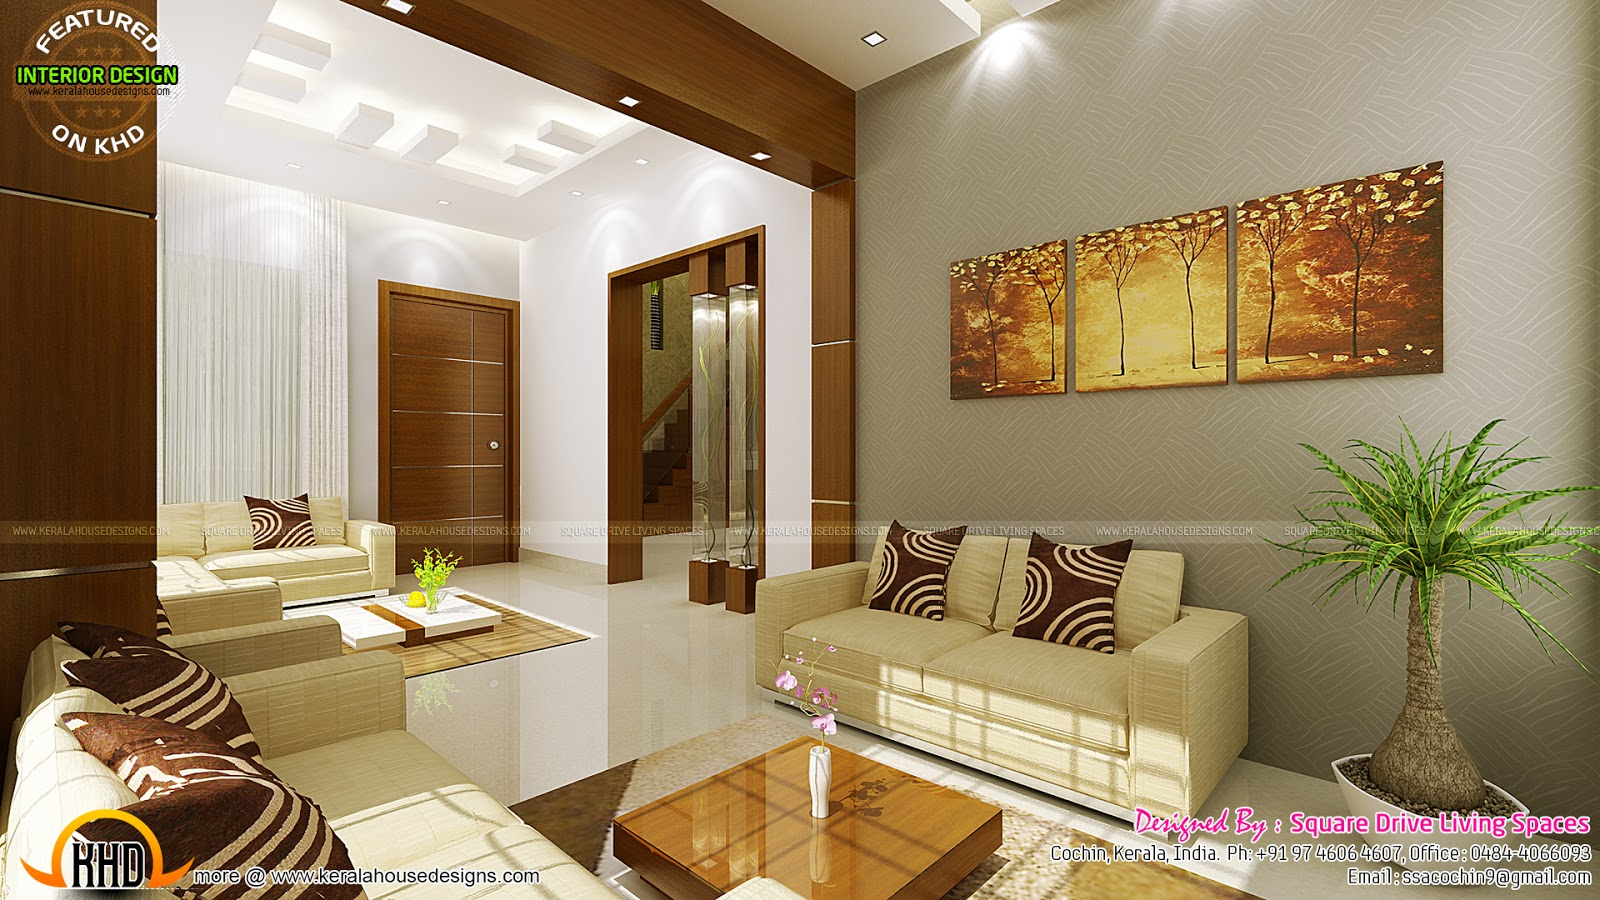 Contemporary kitchen dining and living room kerala home for Interior home